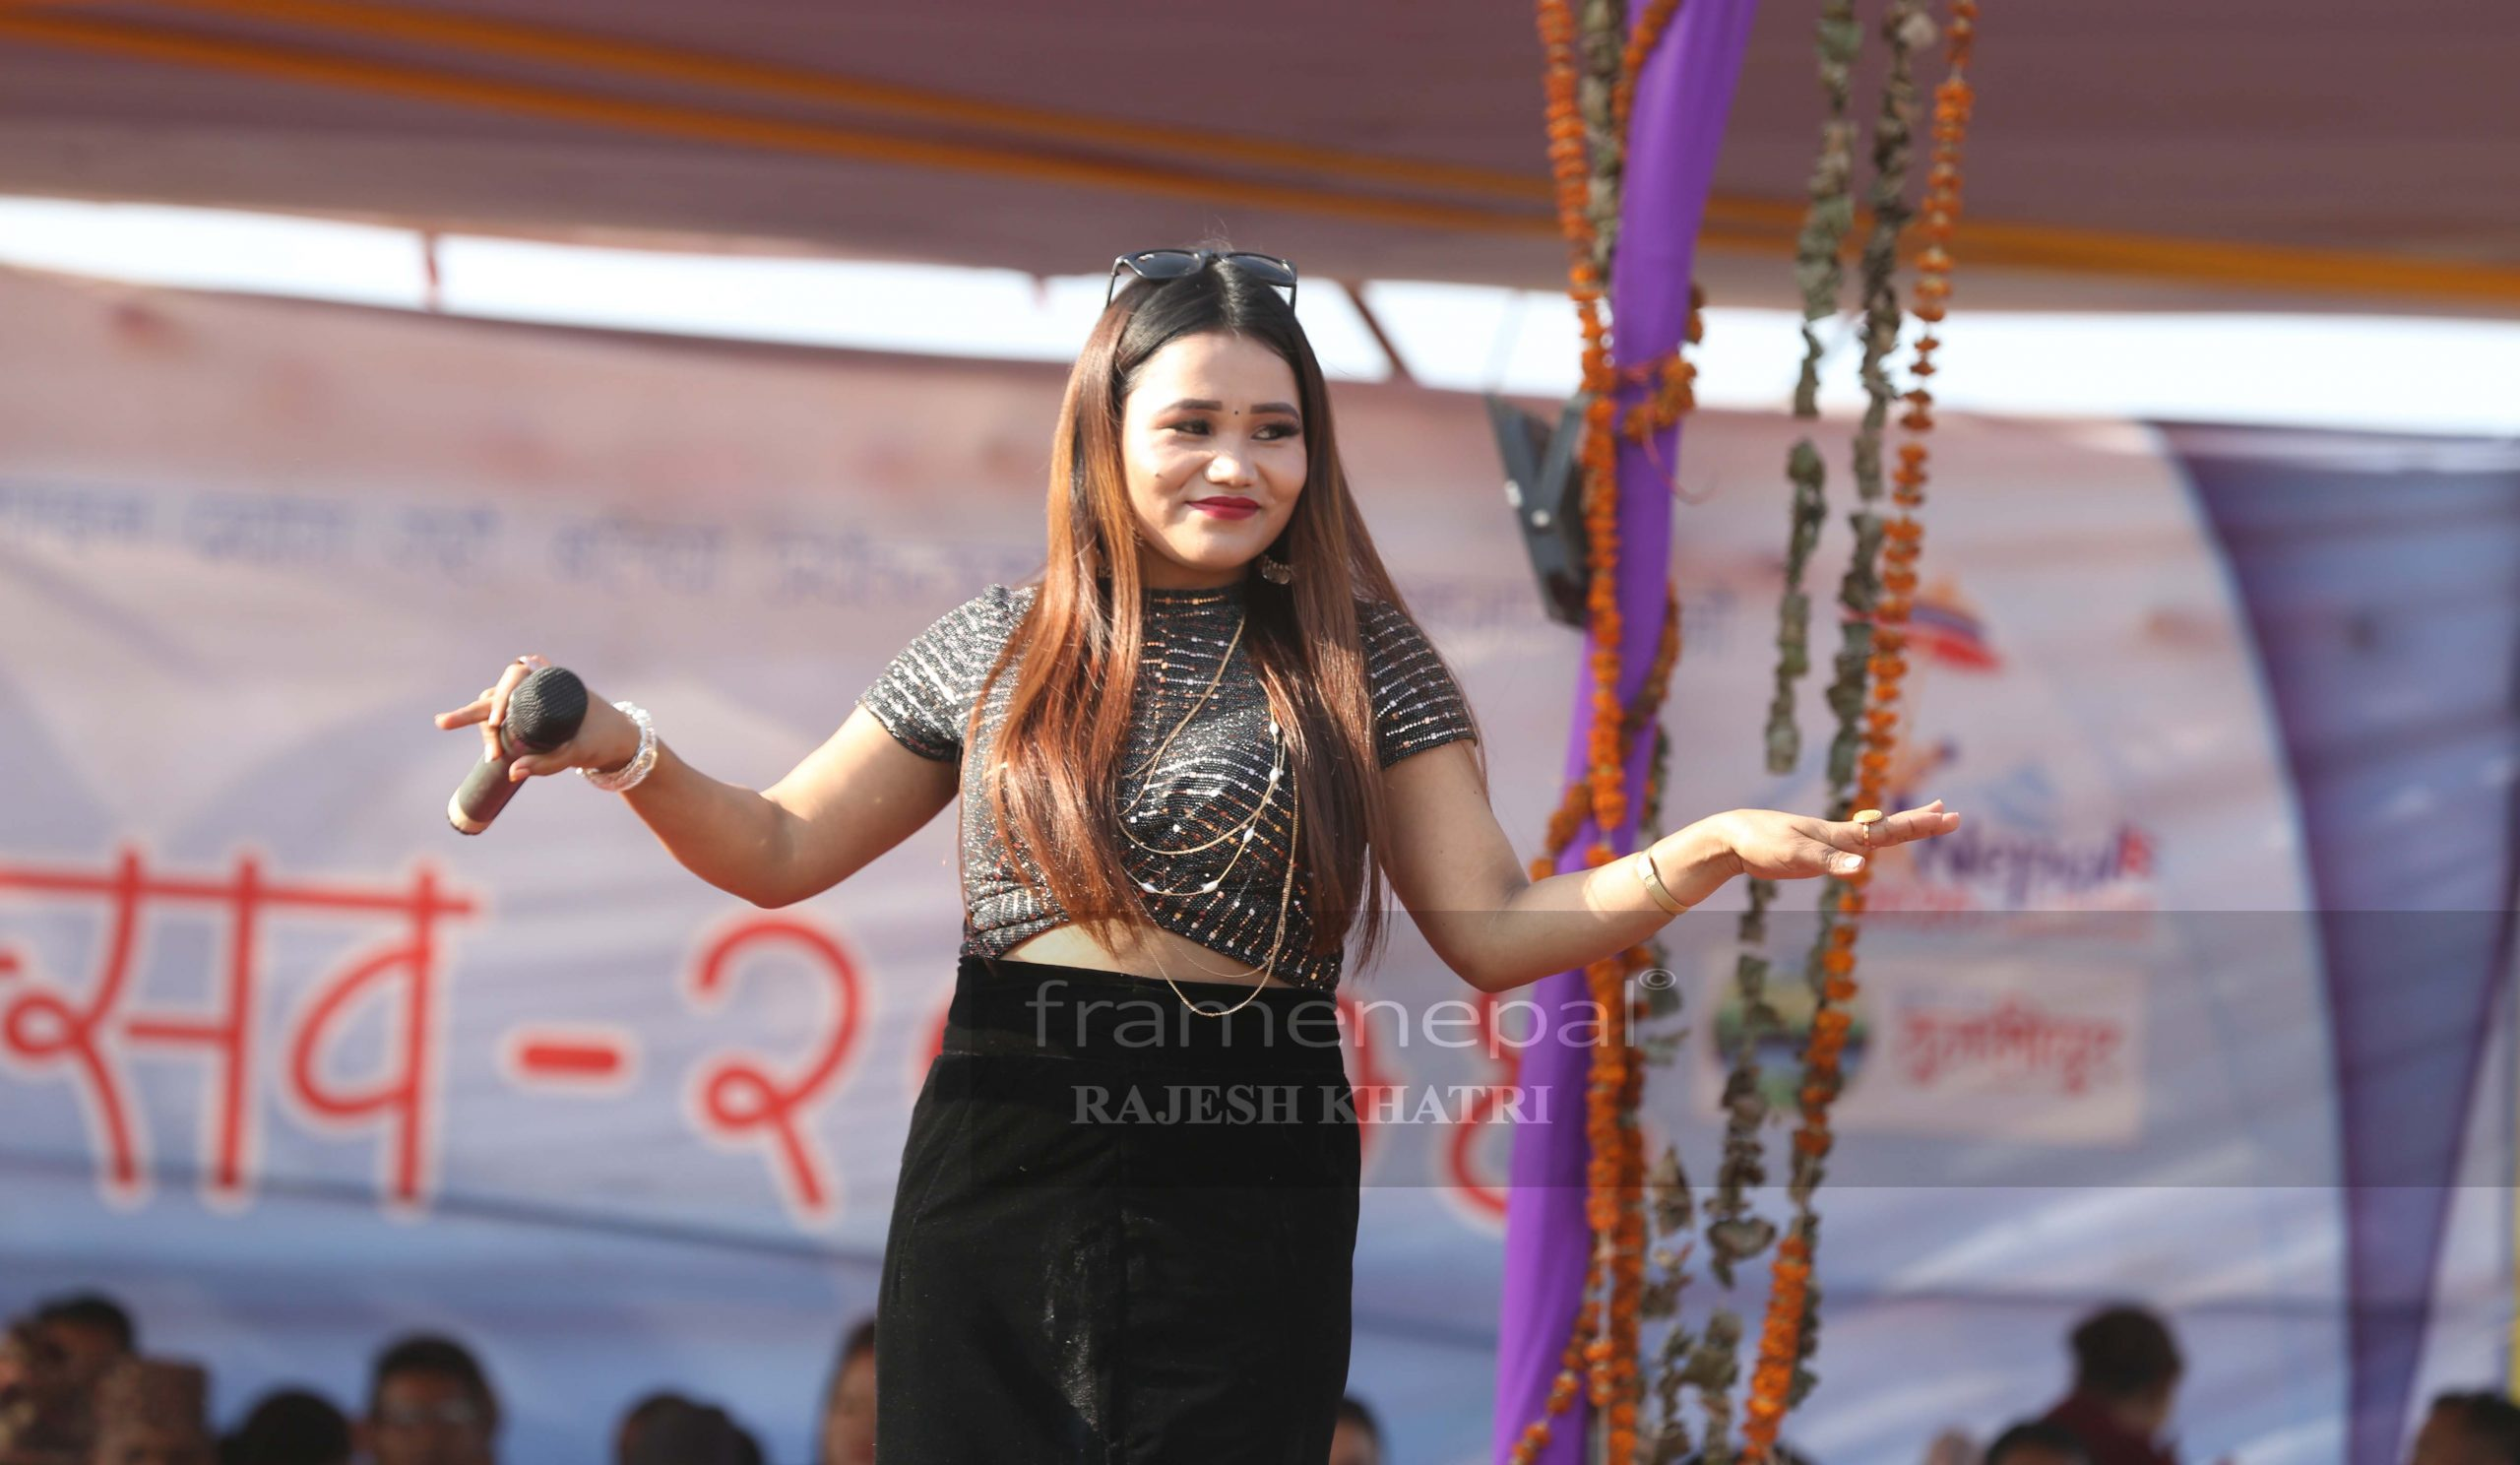 Singer Astha Raut, Best Images For Astha Raut by frame nepal